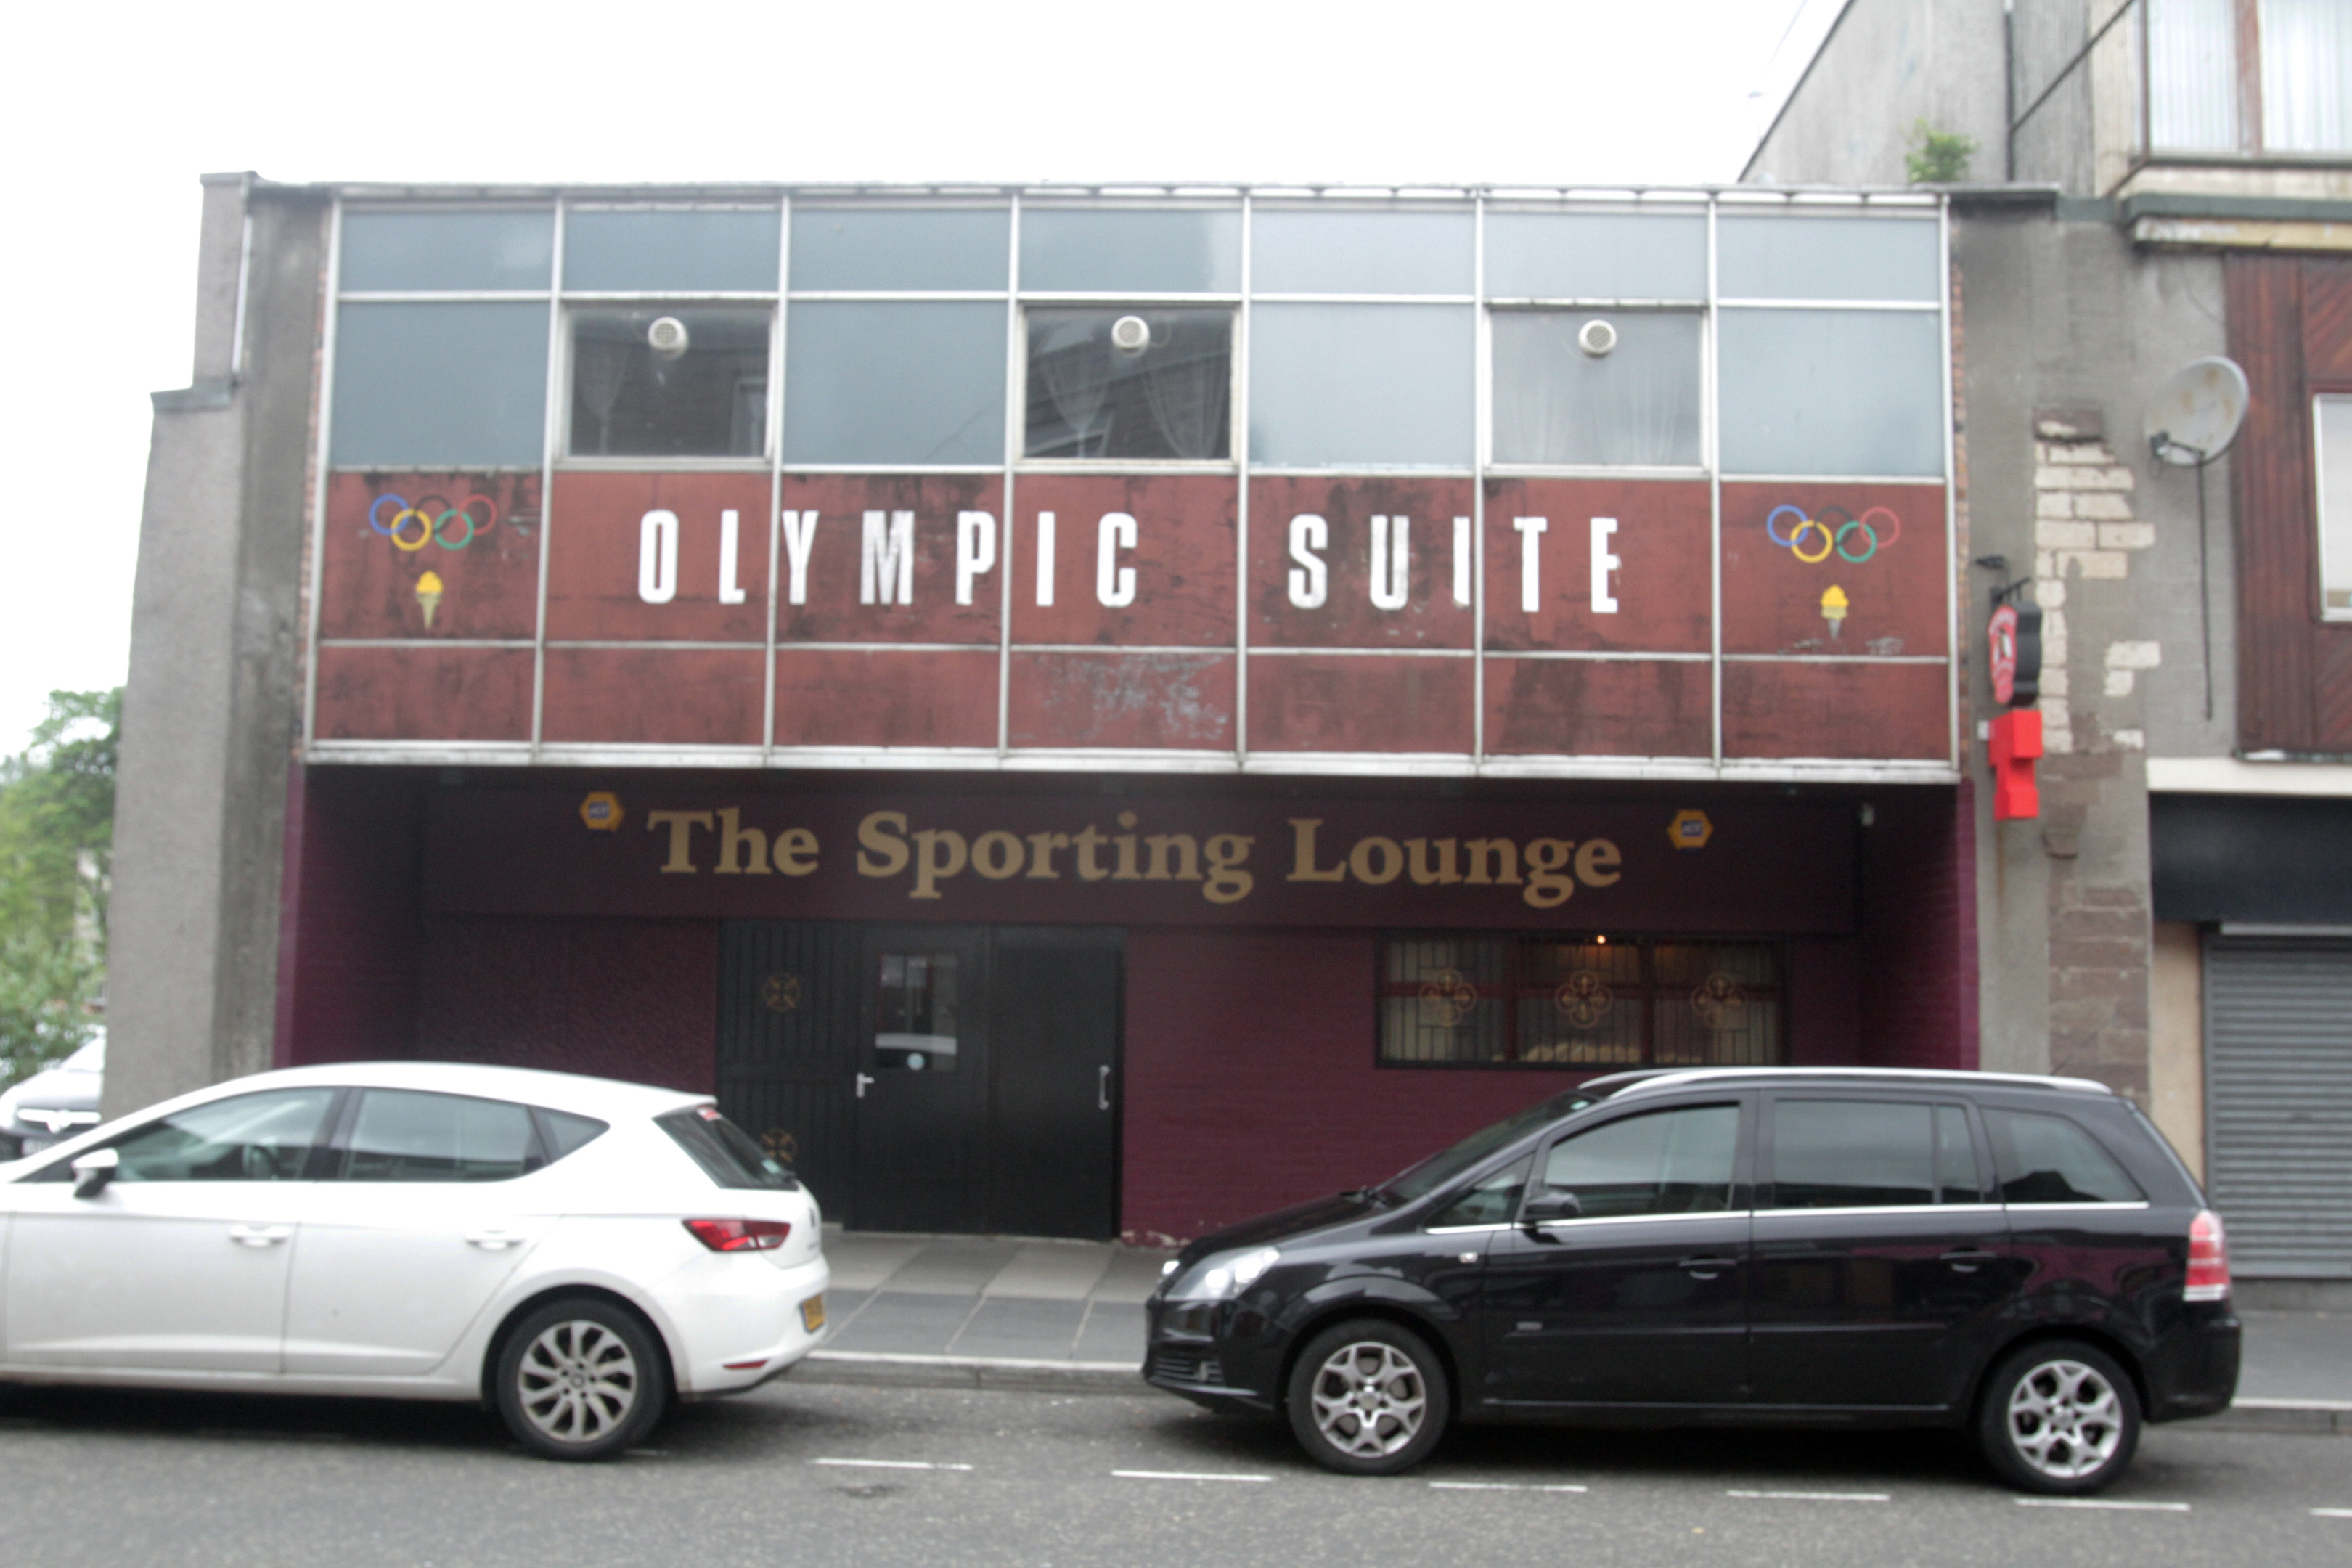 Lochee's Sporting Lounge is for sale at offers around £150,000.